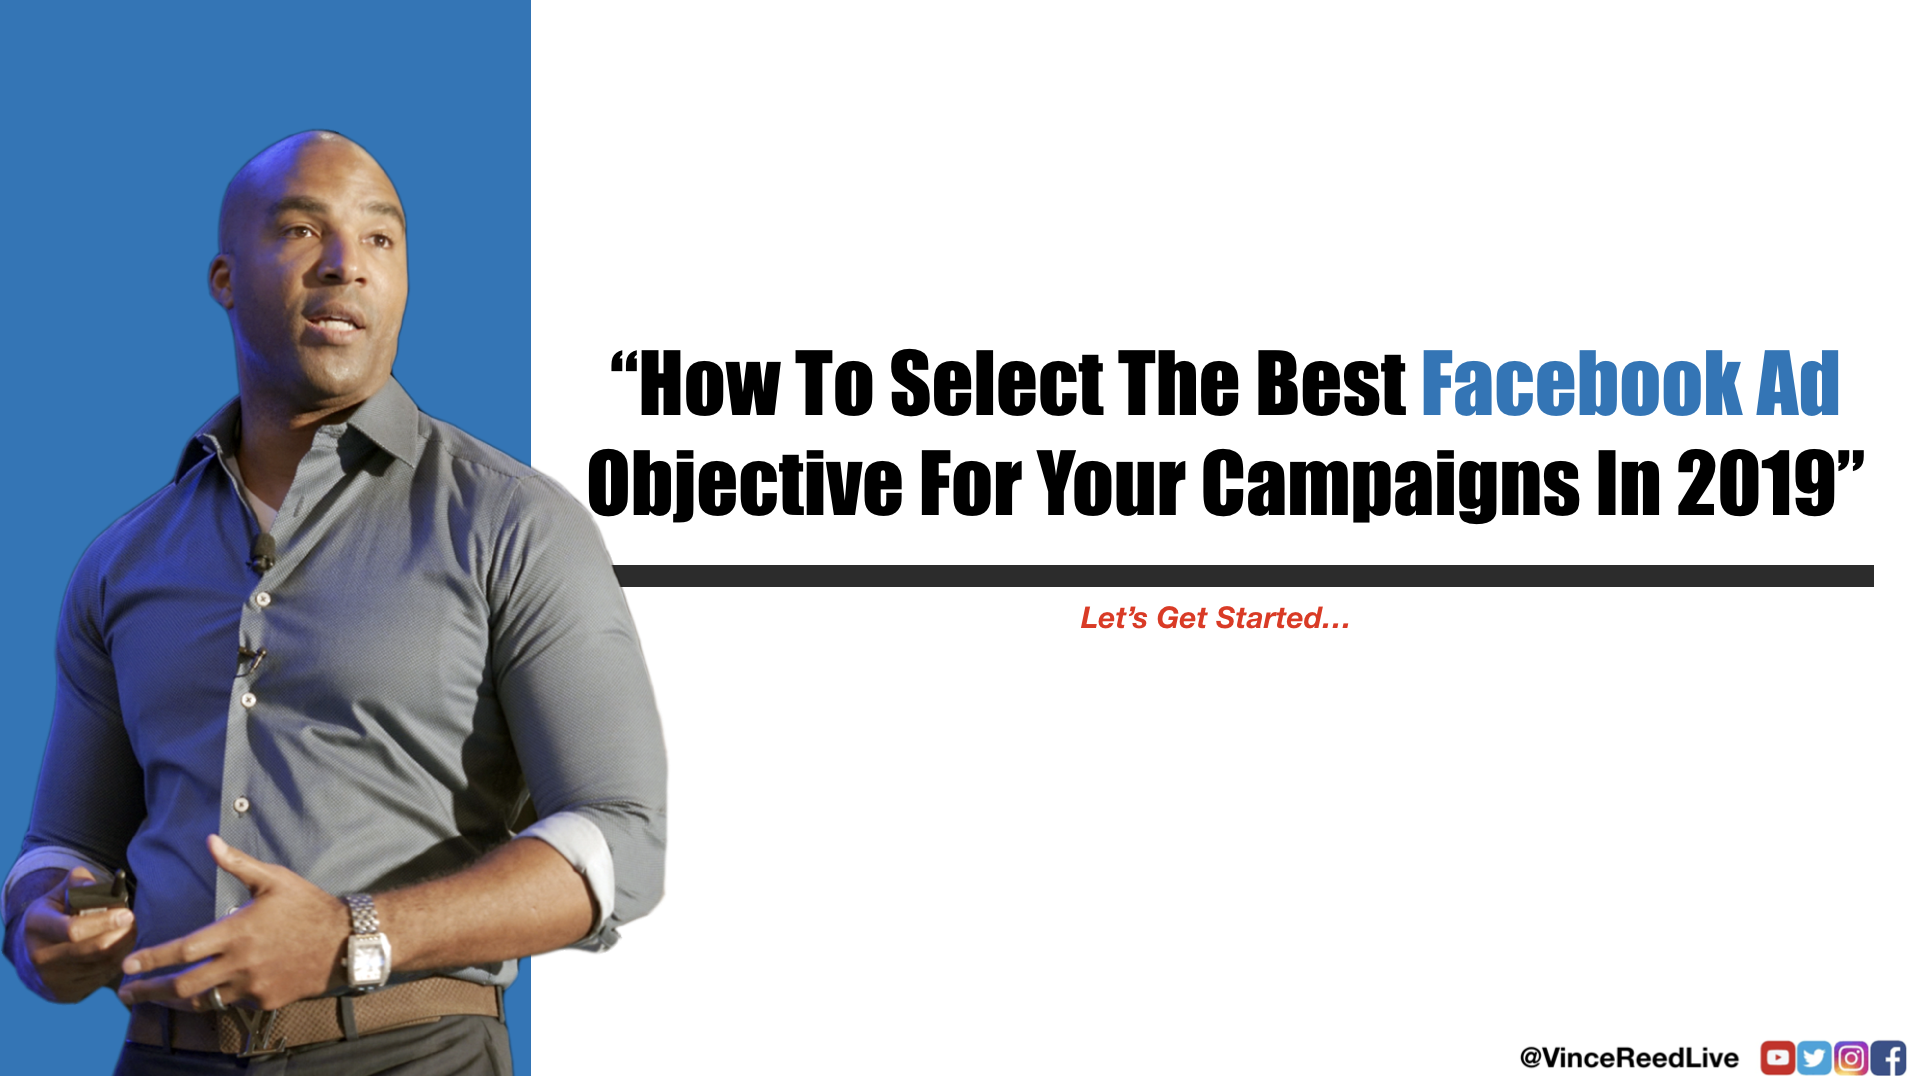 How To Select The Best Facebook Ads Objective For Your